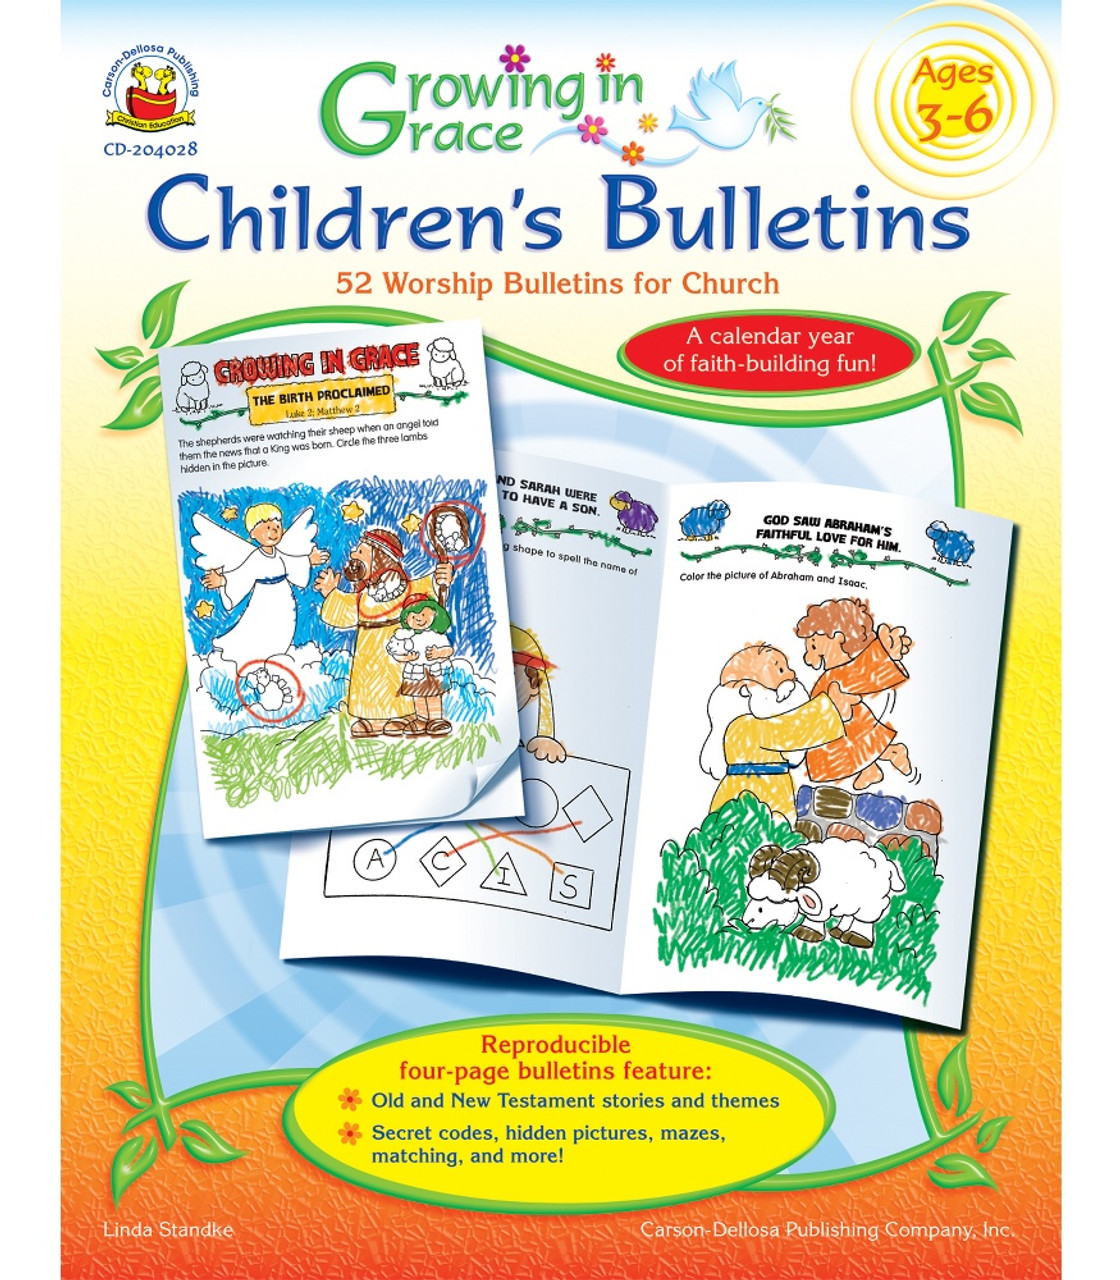 Growing in Grace Children's Bulletins